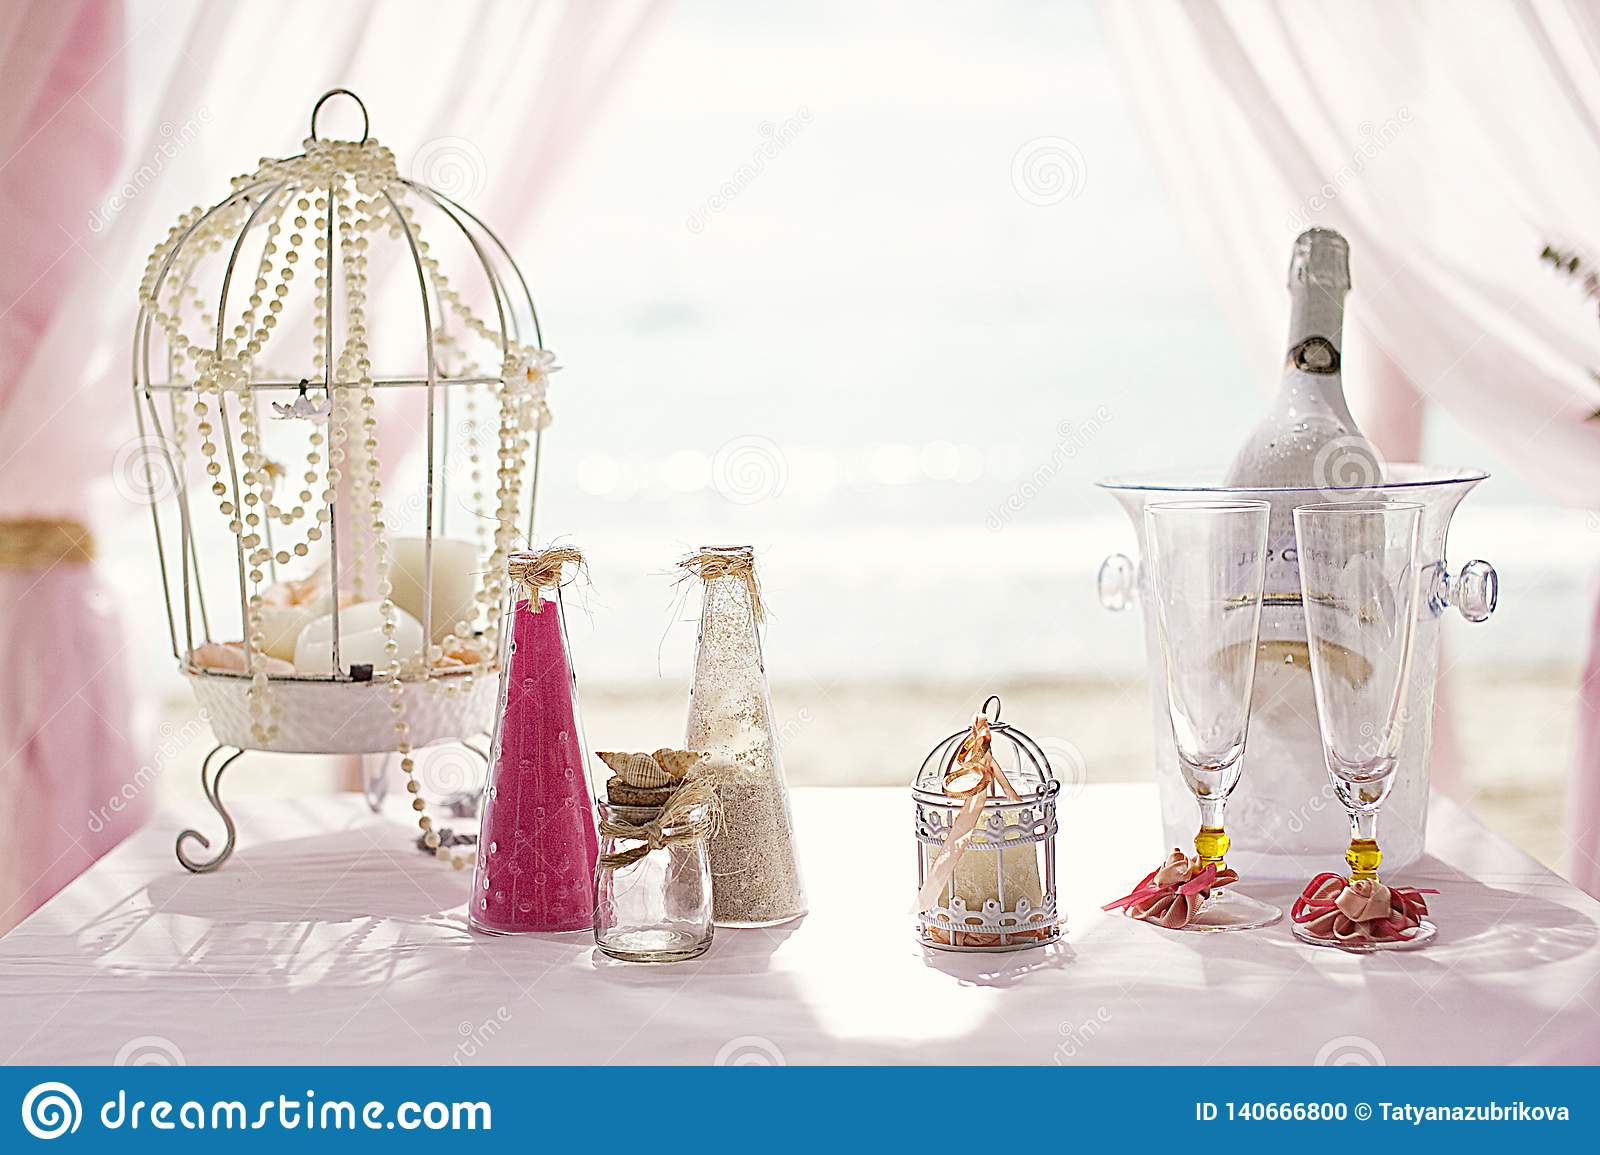 Sand Ceremony Wedding.Tropical Wedding Sand Ceremony Wedding In A Nautical Style